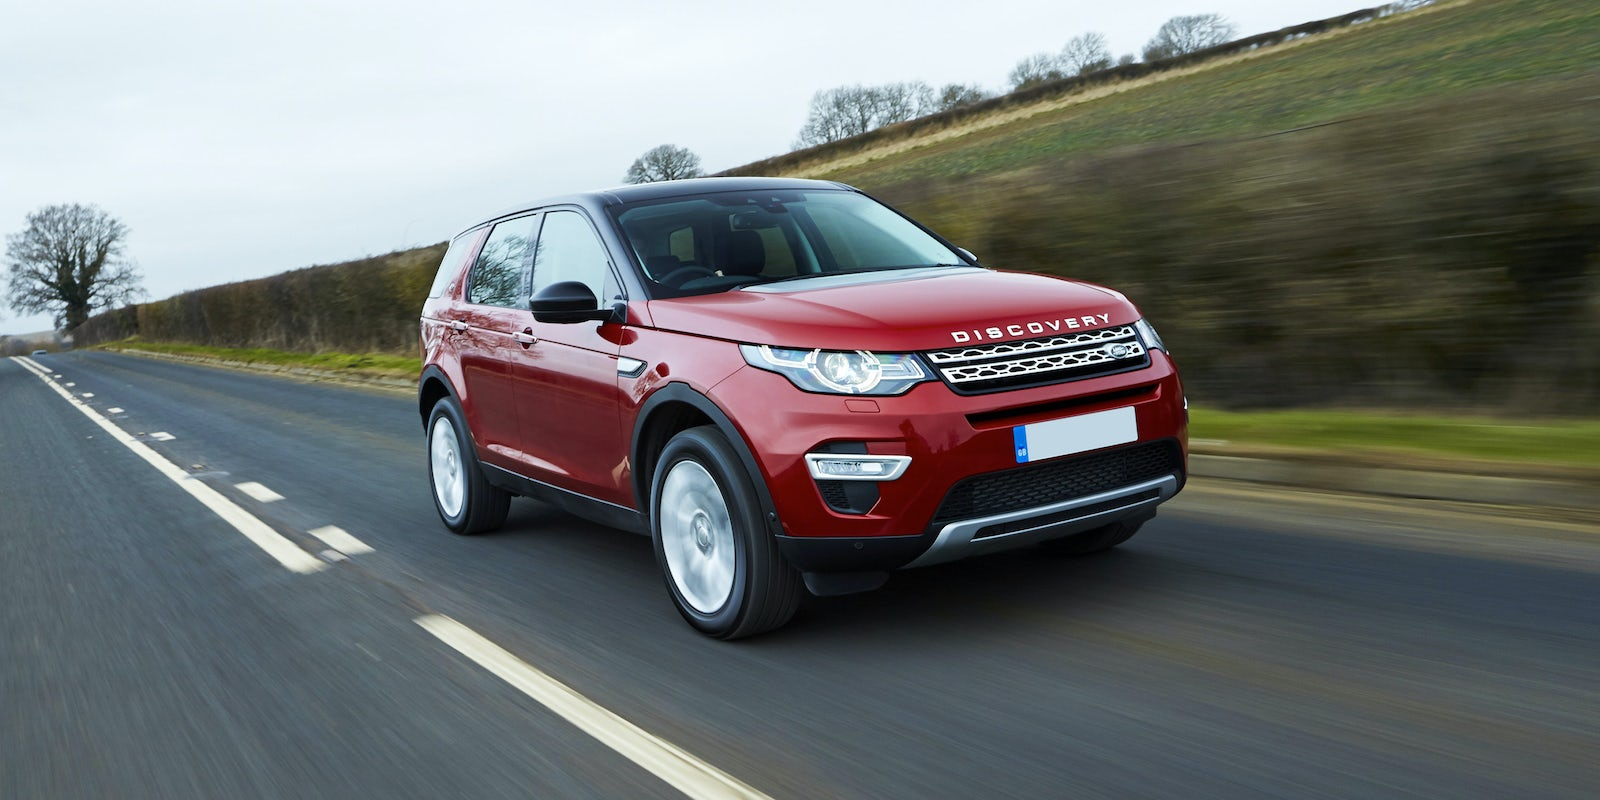 New Land Rover Discovery Sport Review Carwow 4 6 Engine